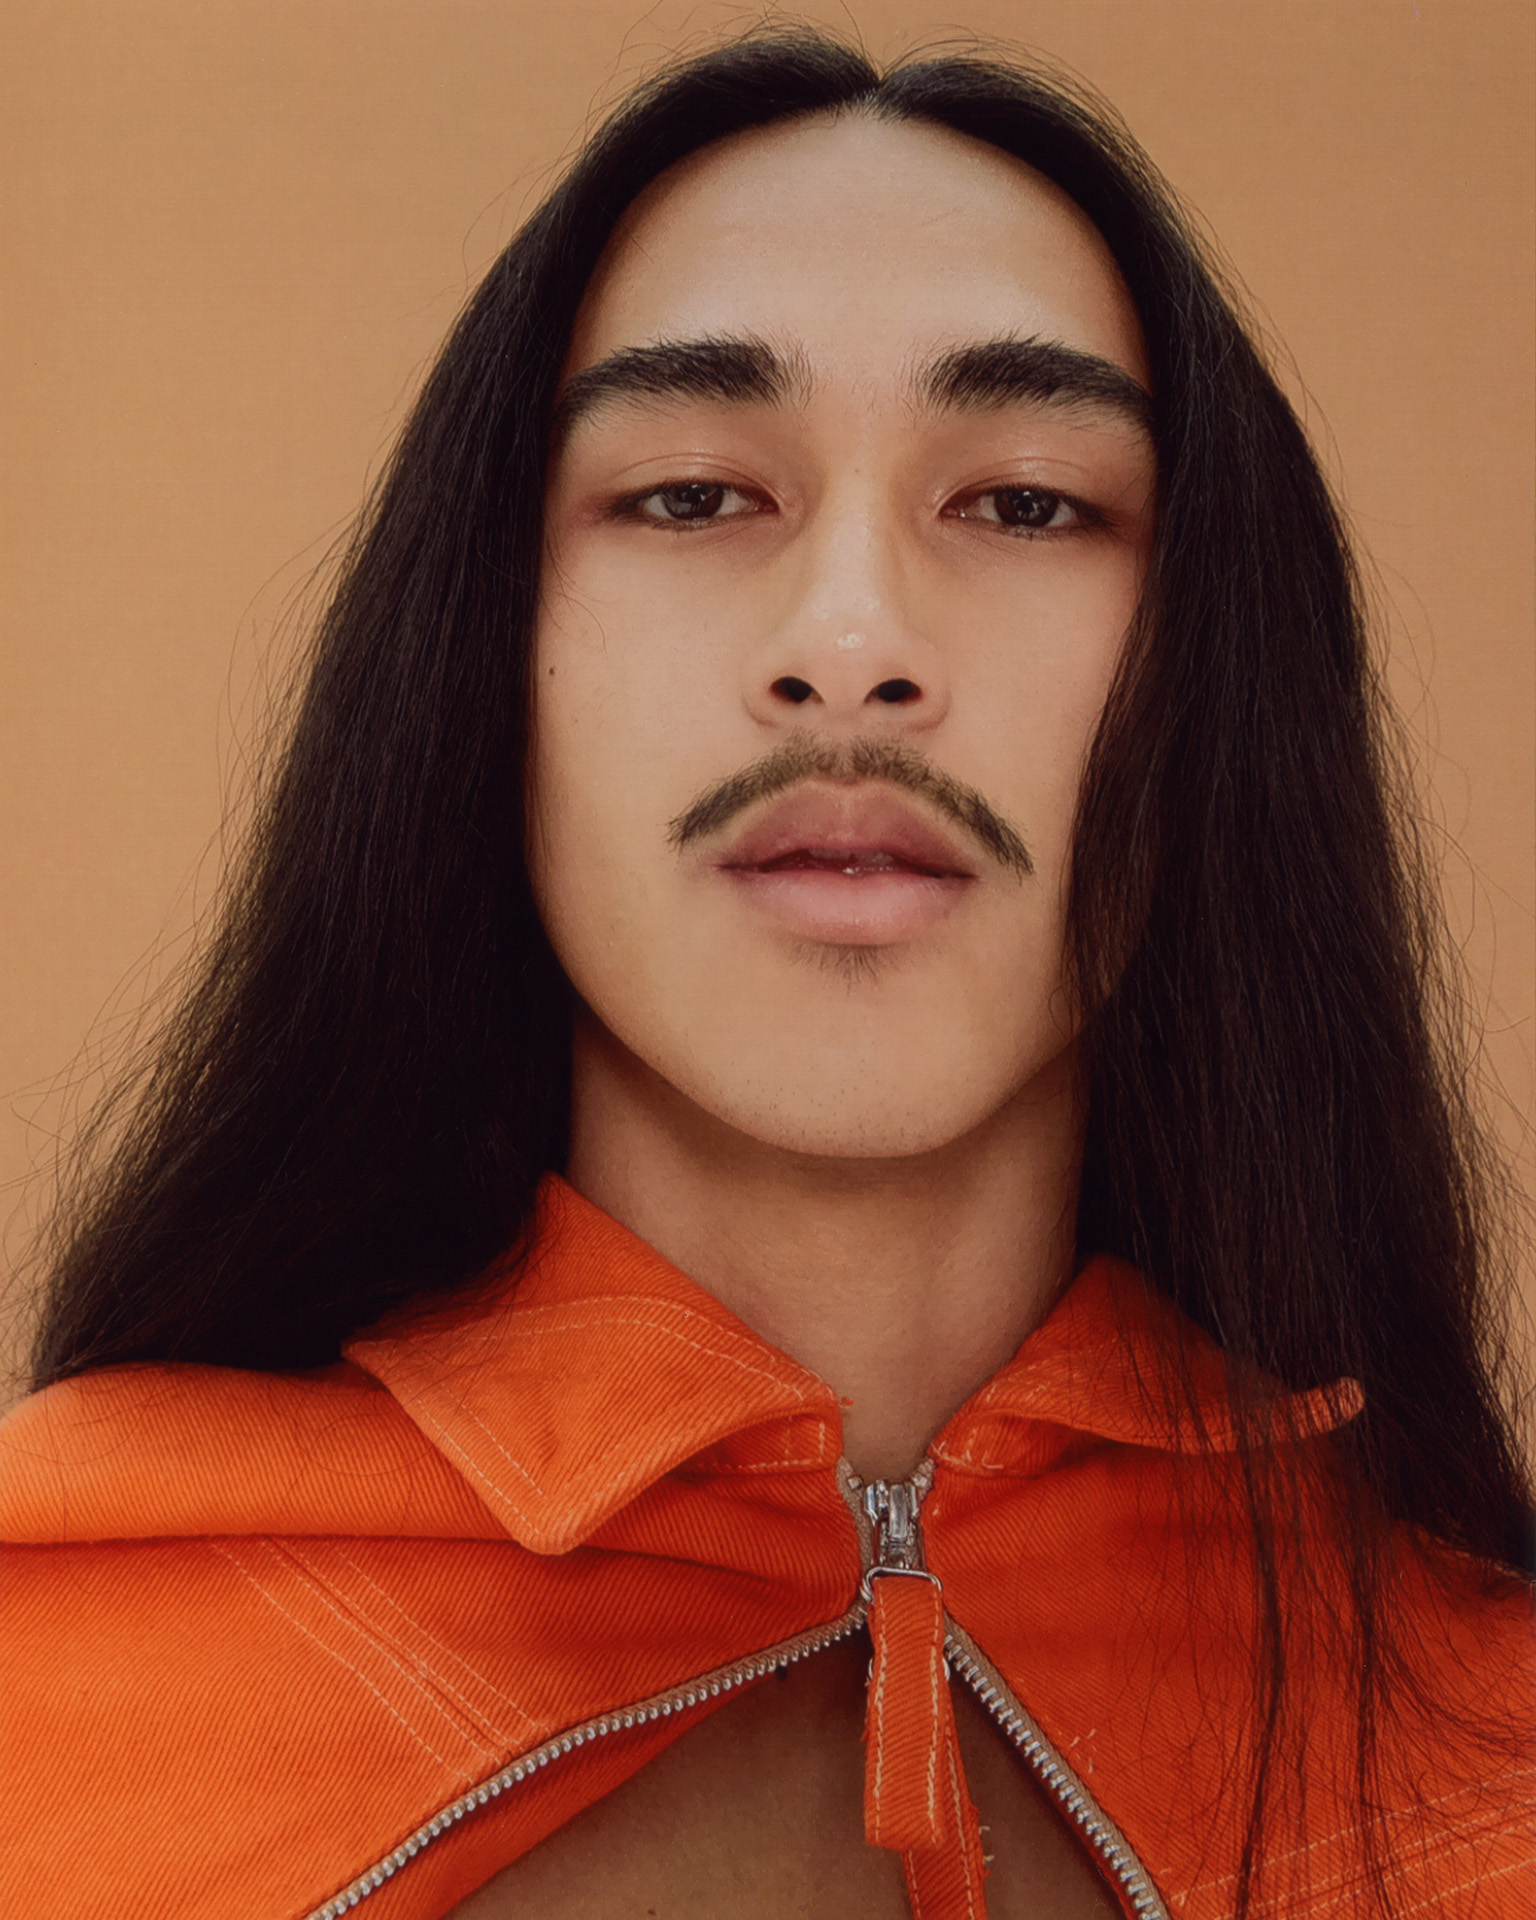 male model with long hair and mustache by Oumayma B Tanfous for Document Journal barragannnn casting summer spring 2020